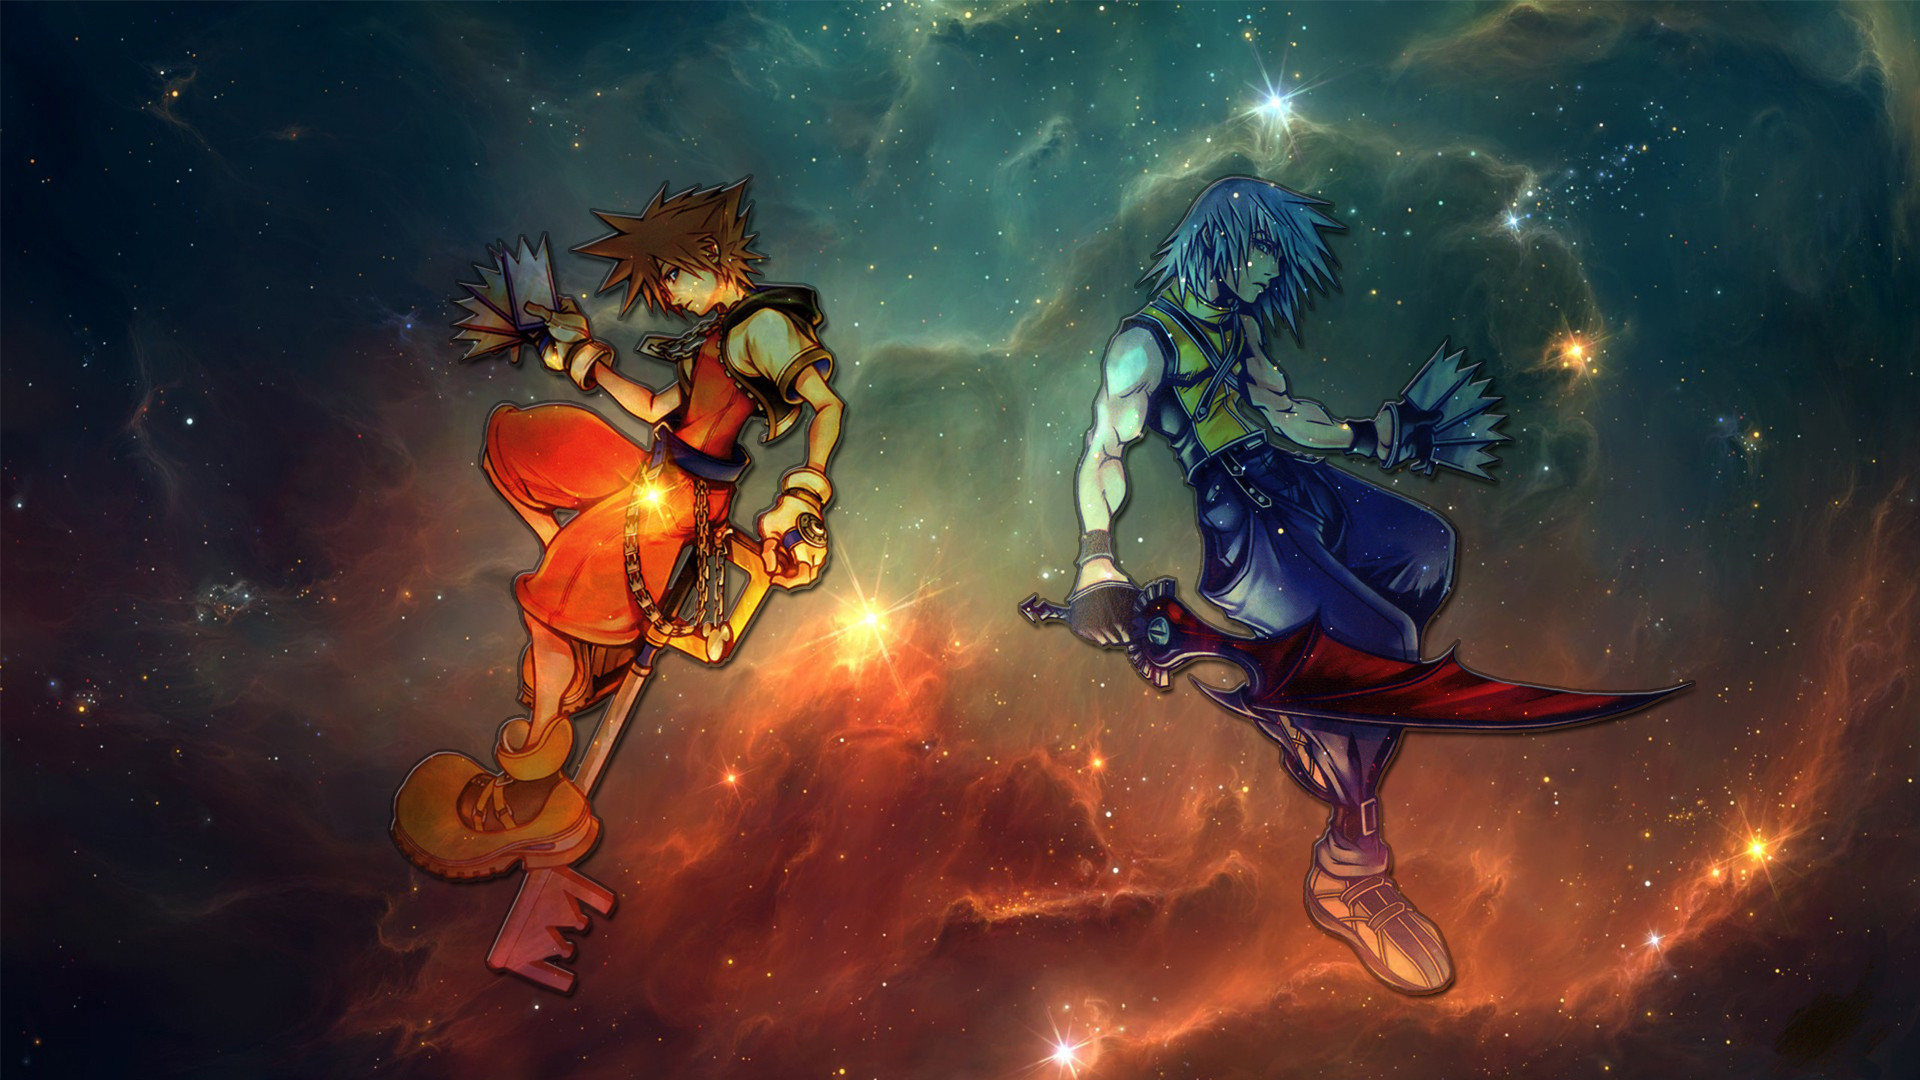 1920x1080 Kingdom Hearts Sora Wallpapers High Quality